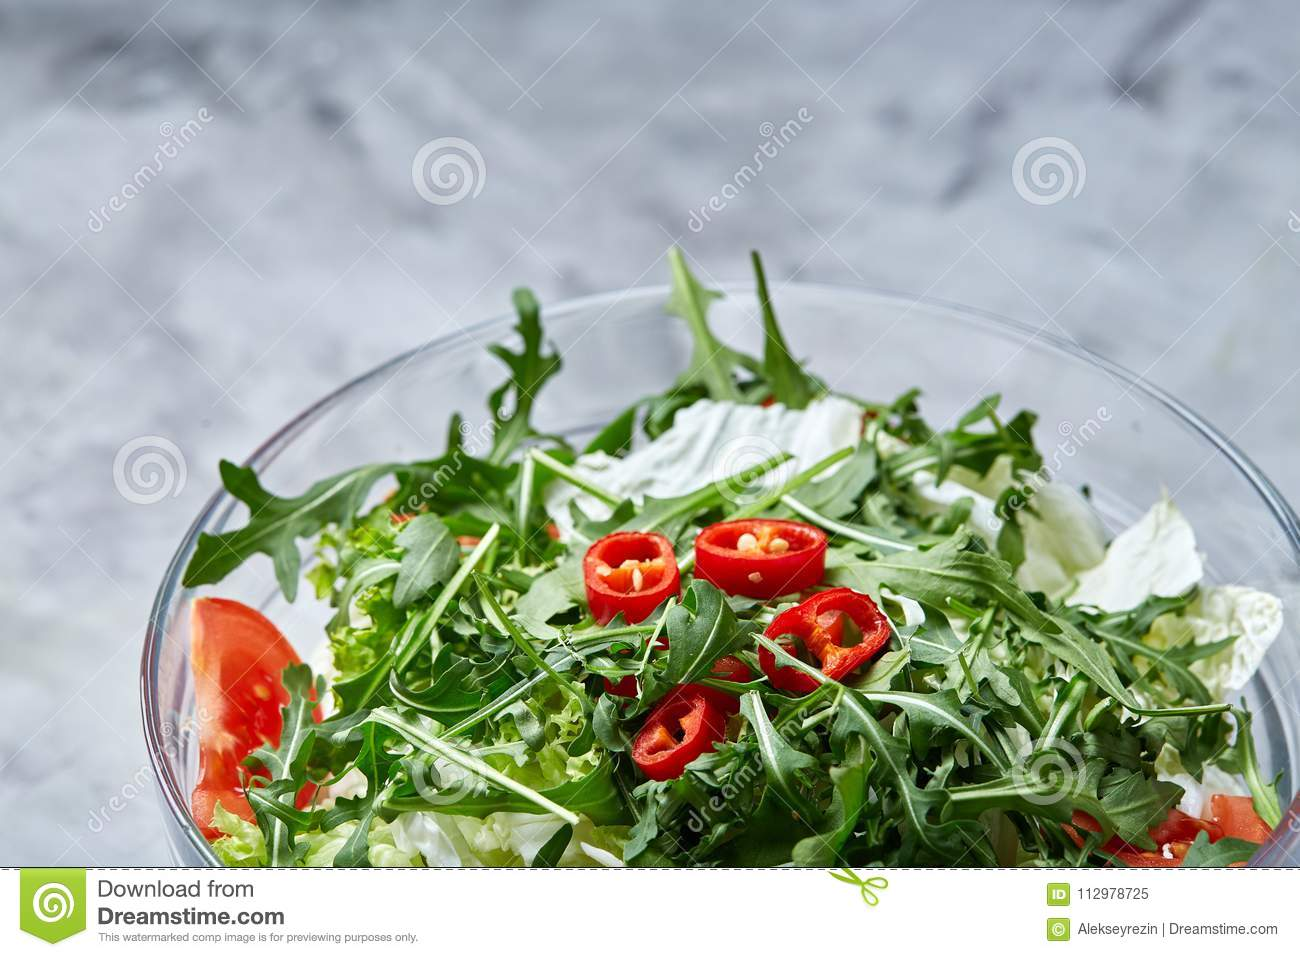 Dietary mixed salad in glass sultana served with wooden spoon on white background, selective focus